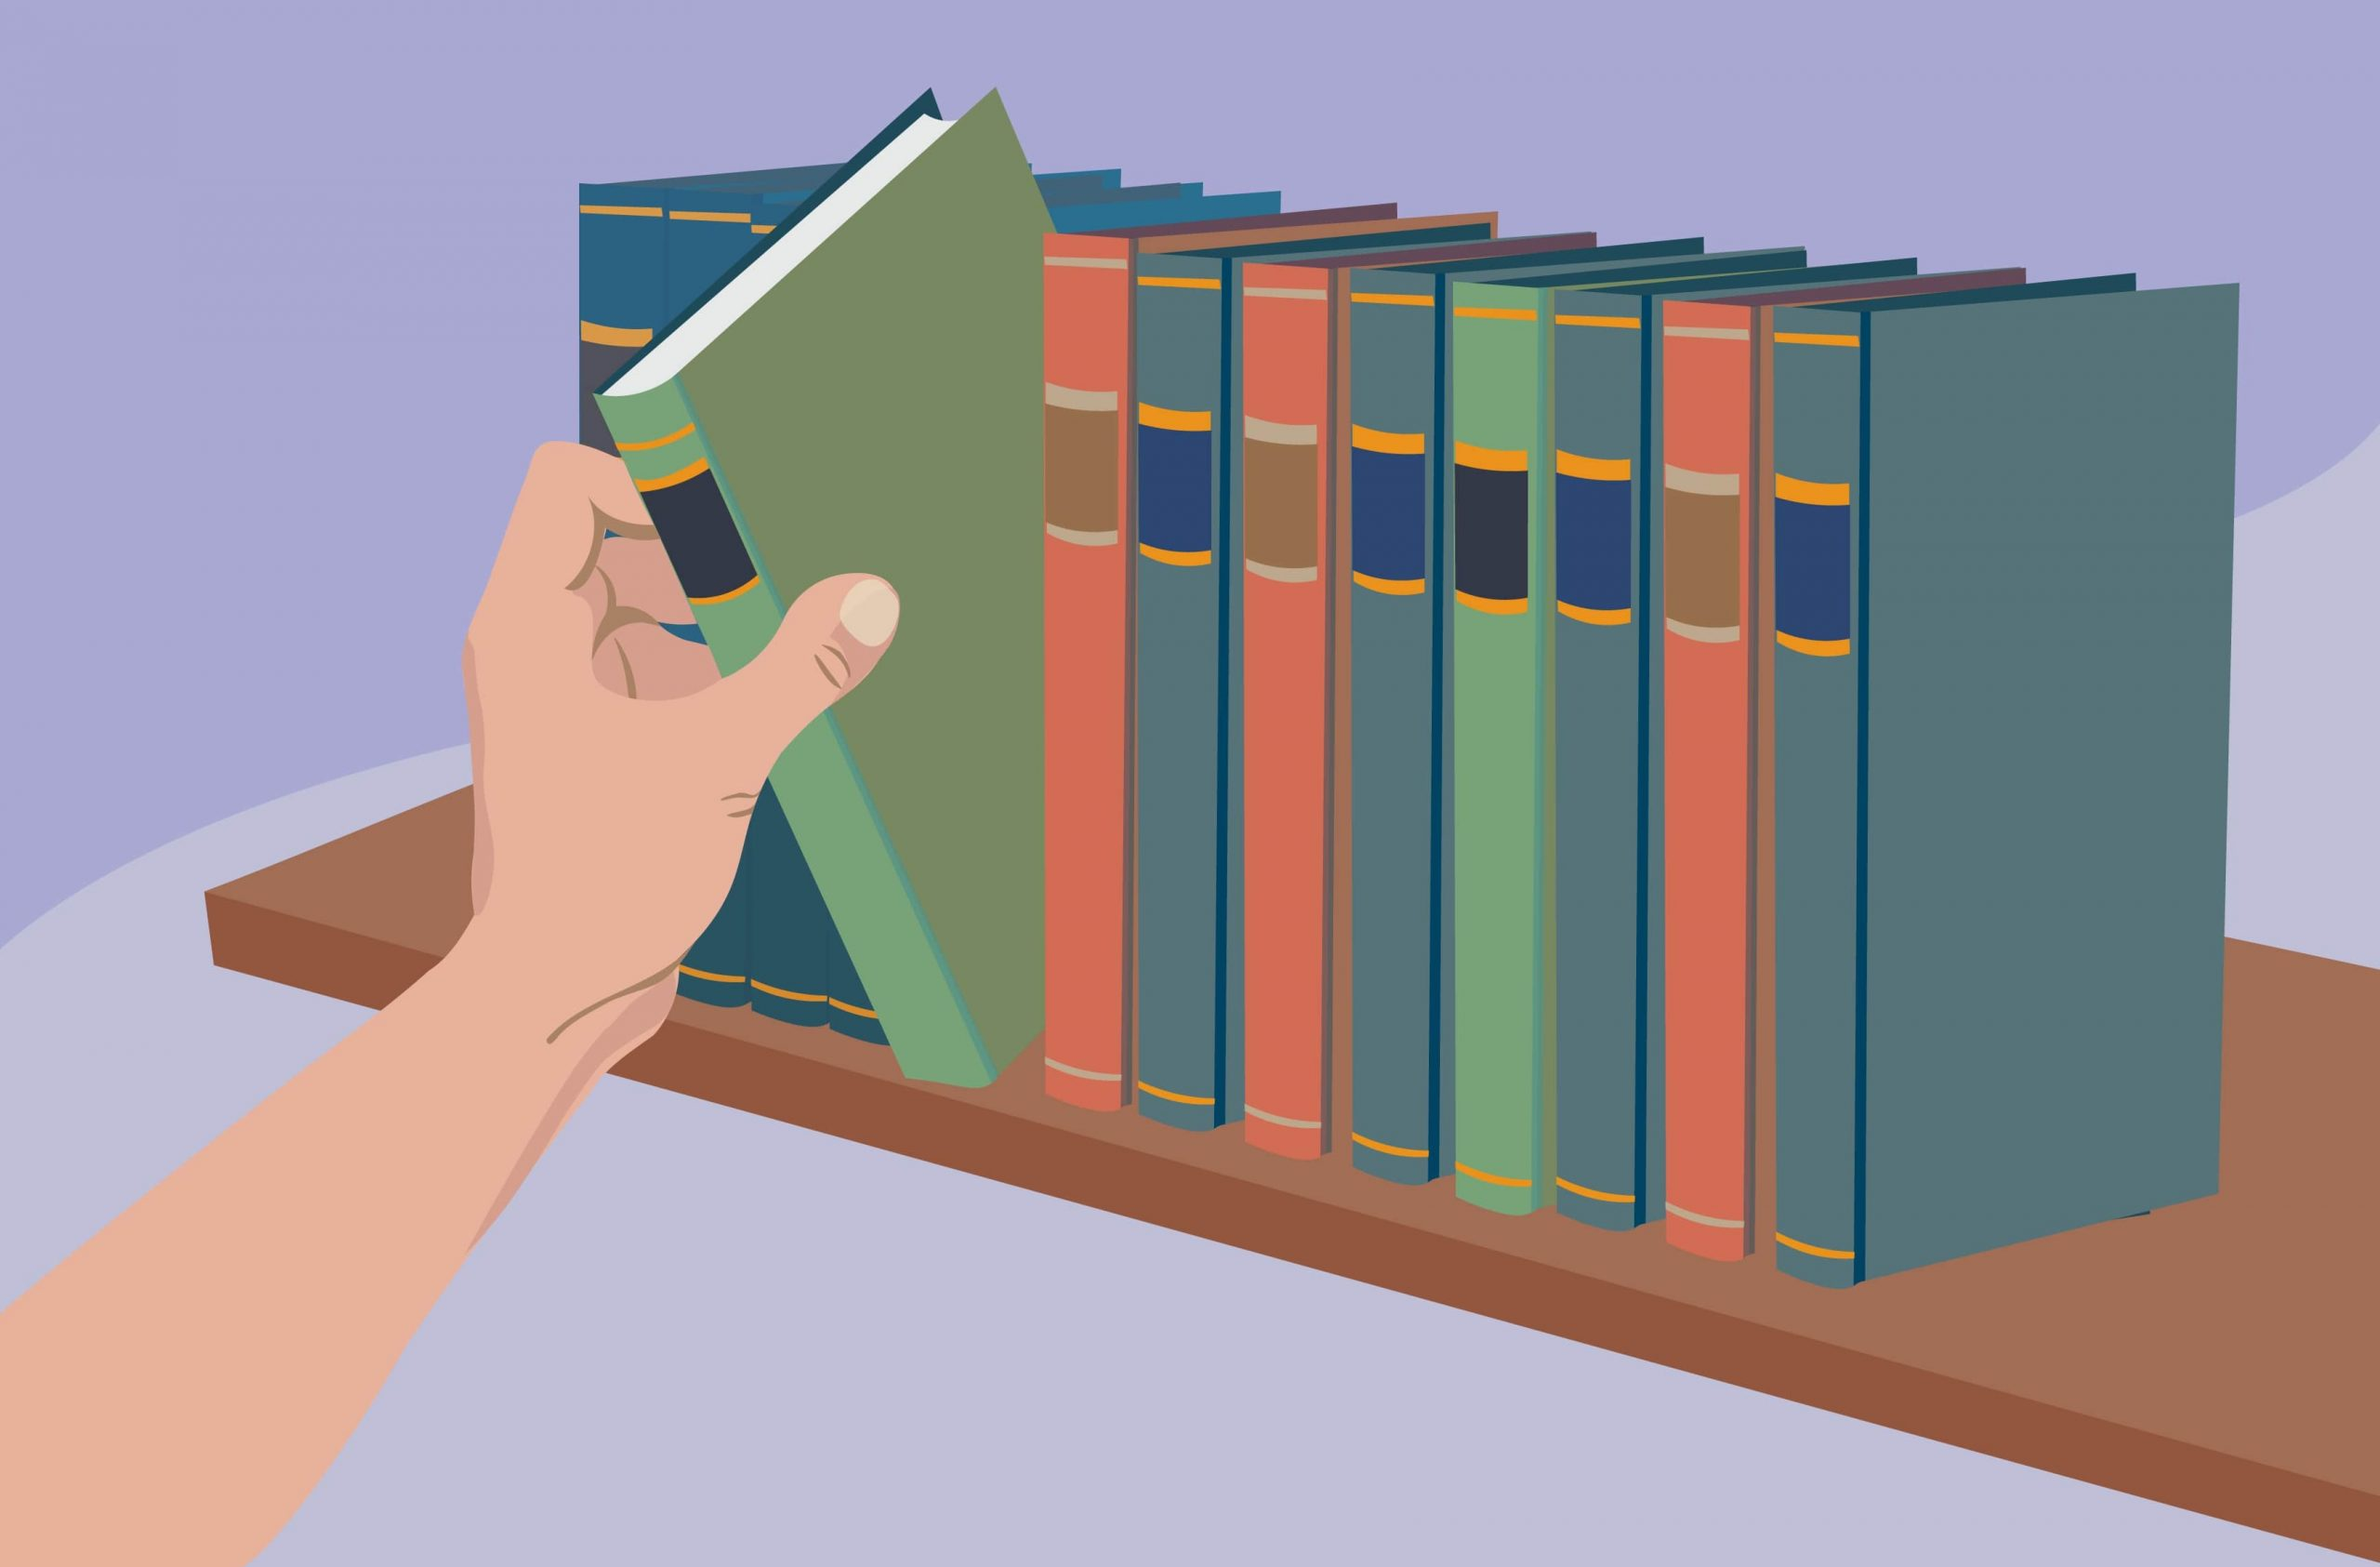 For Better Sleep, Read a Book Before Bed